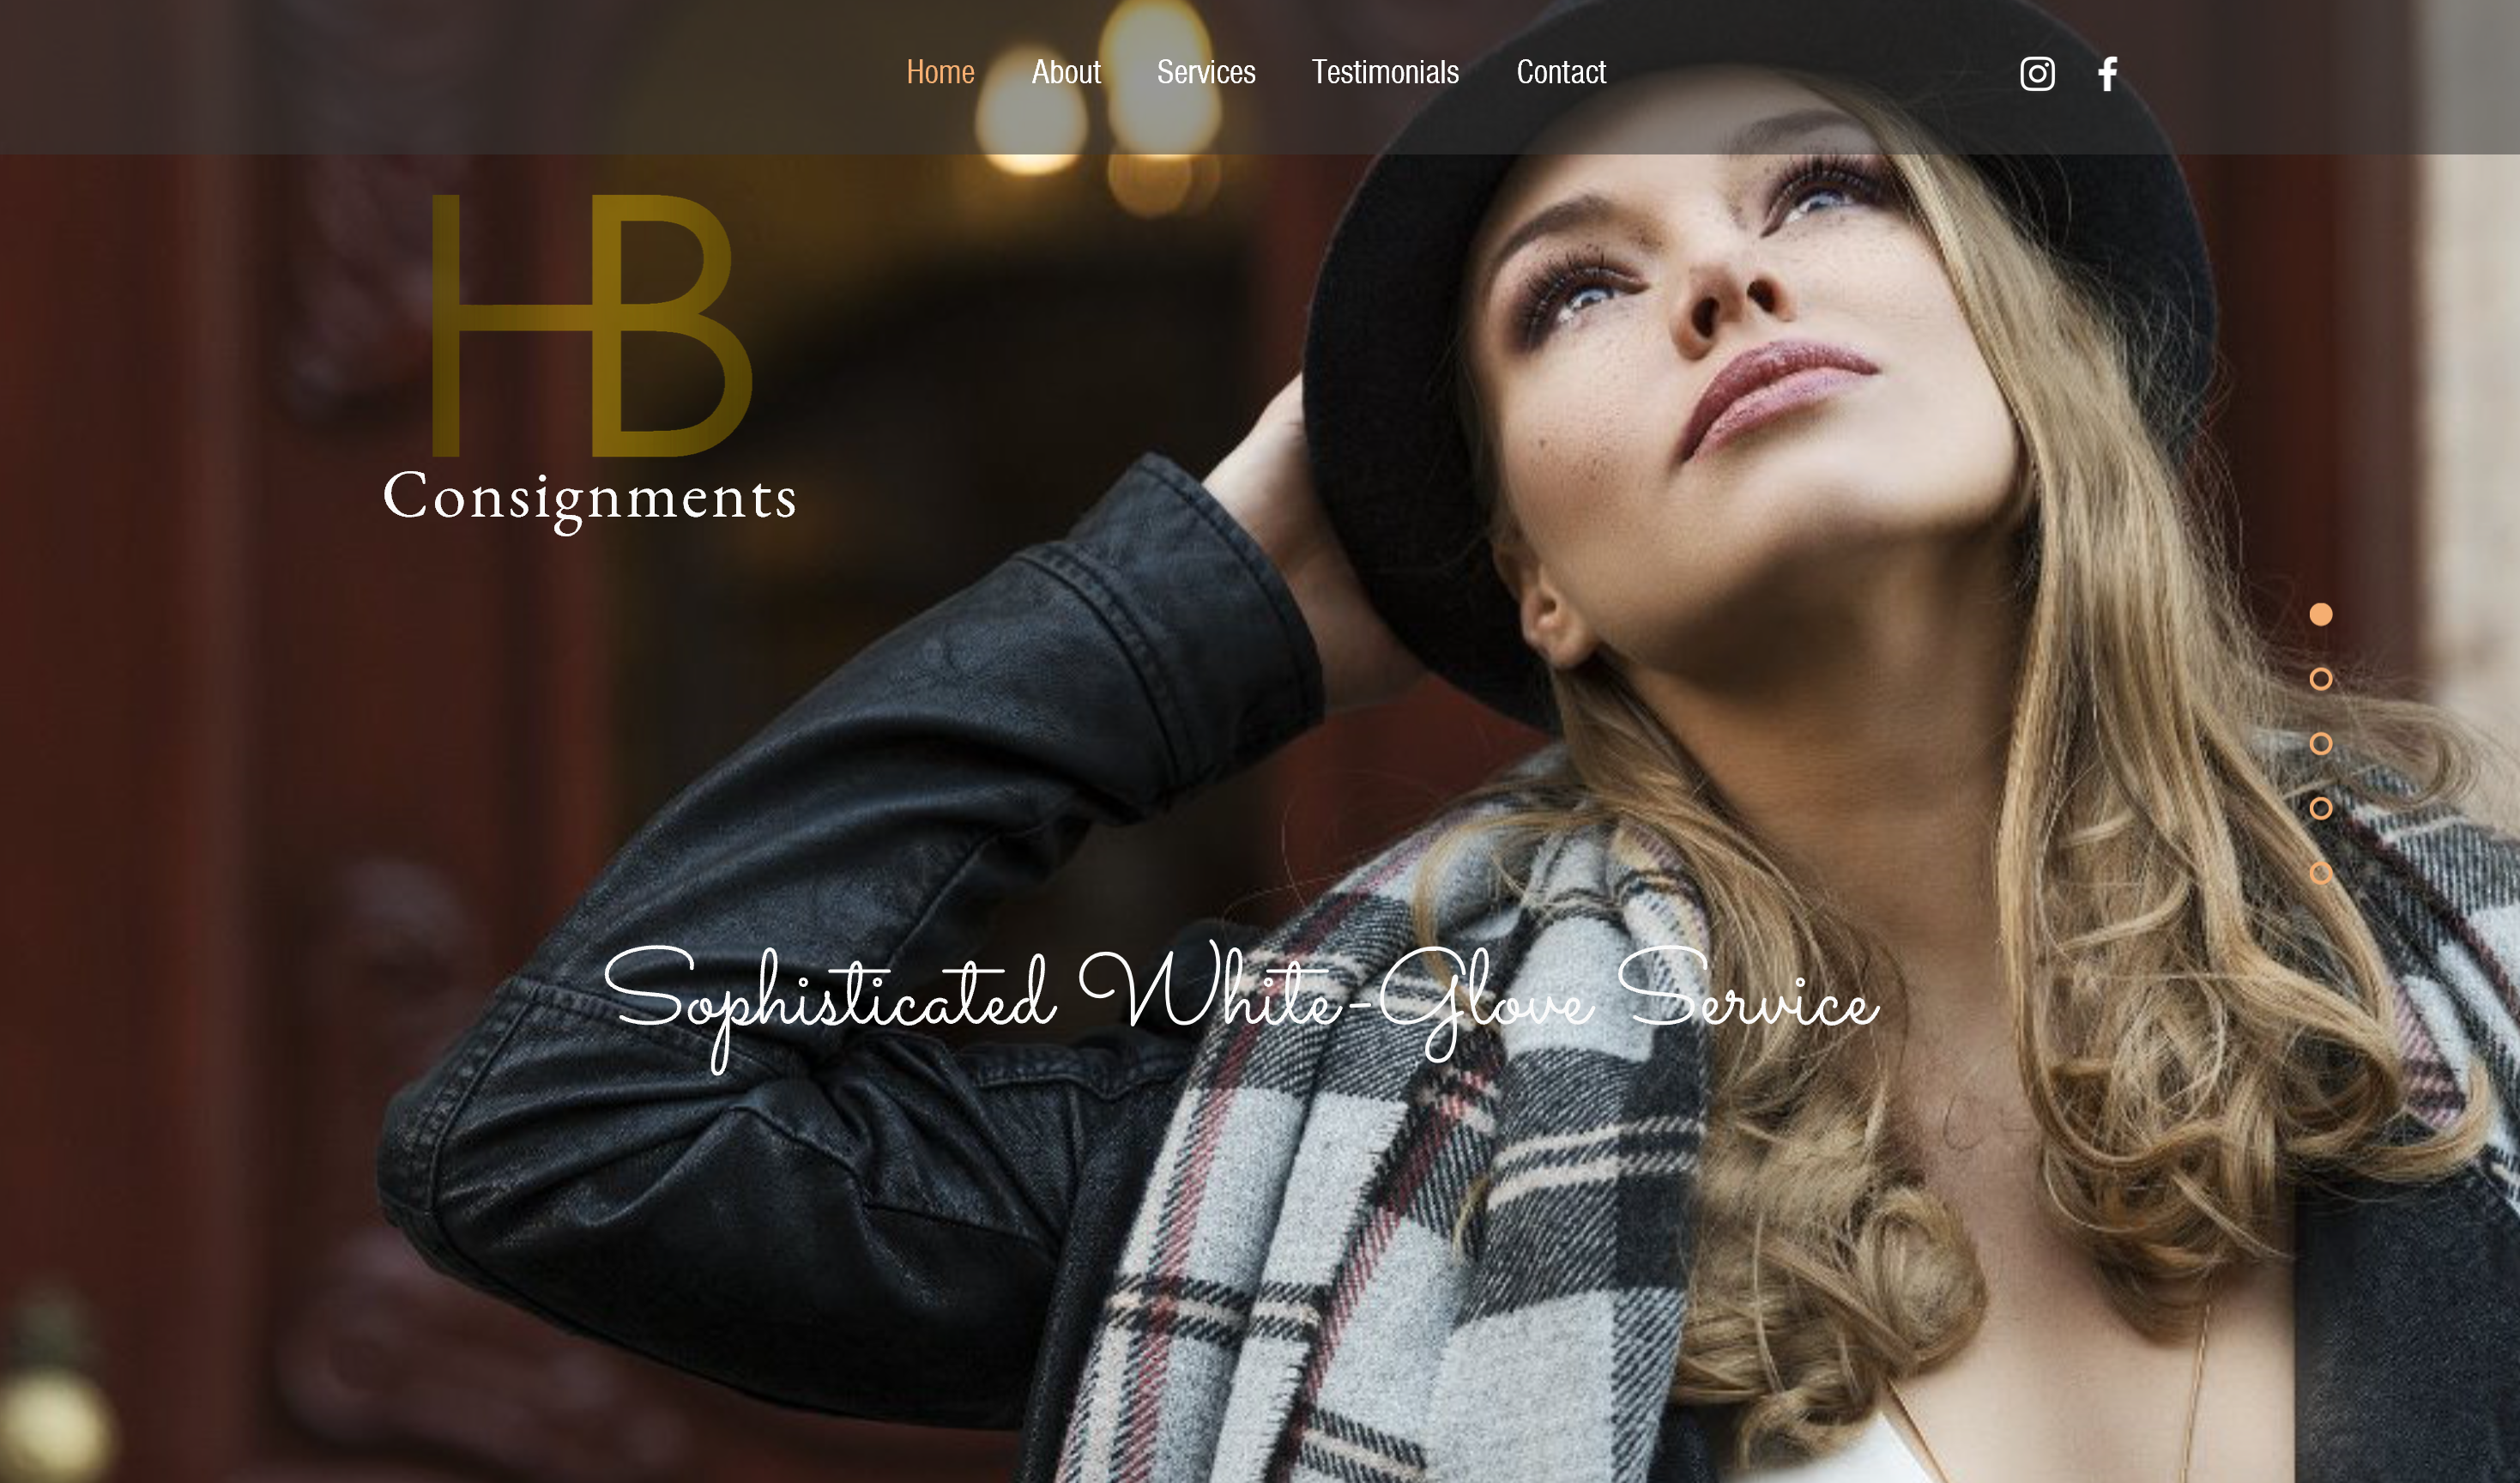 Web design boutique | Webcandy.media